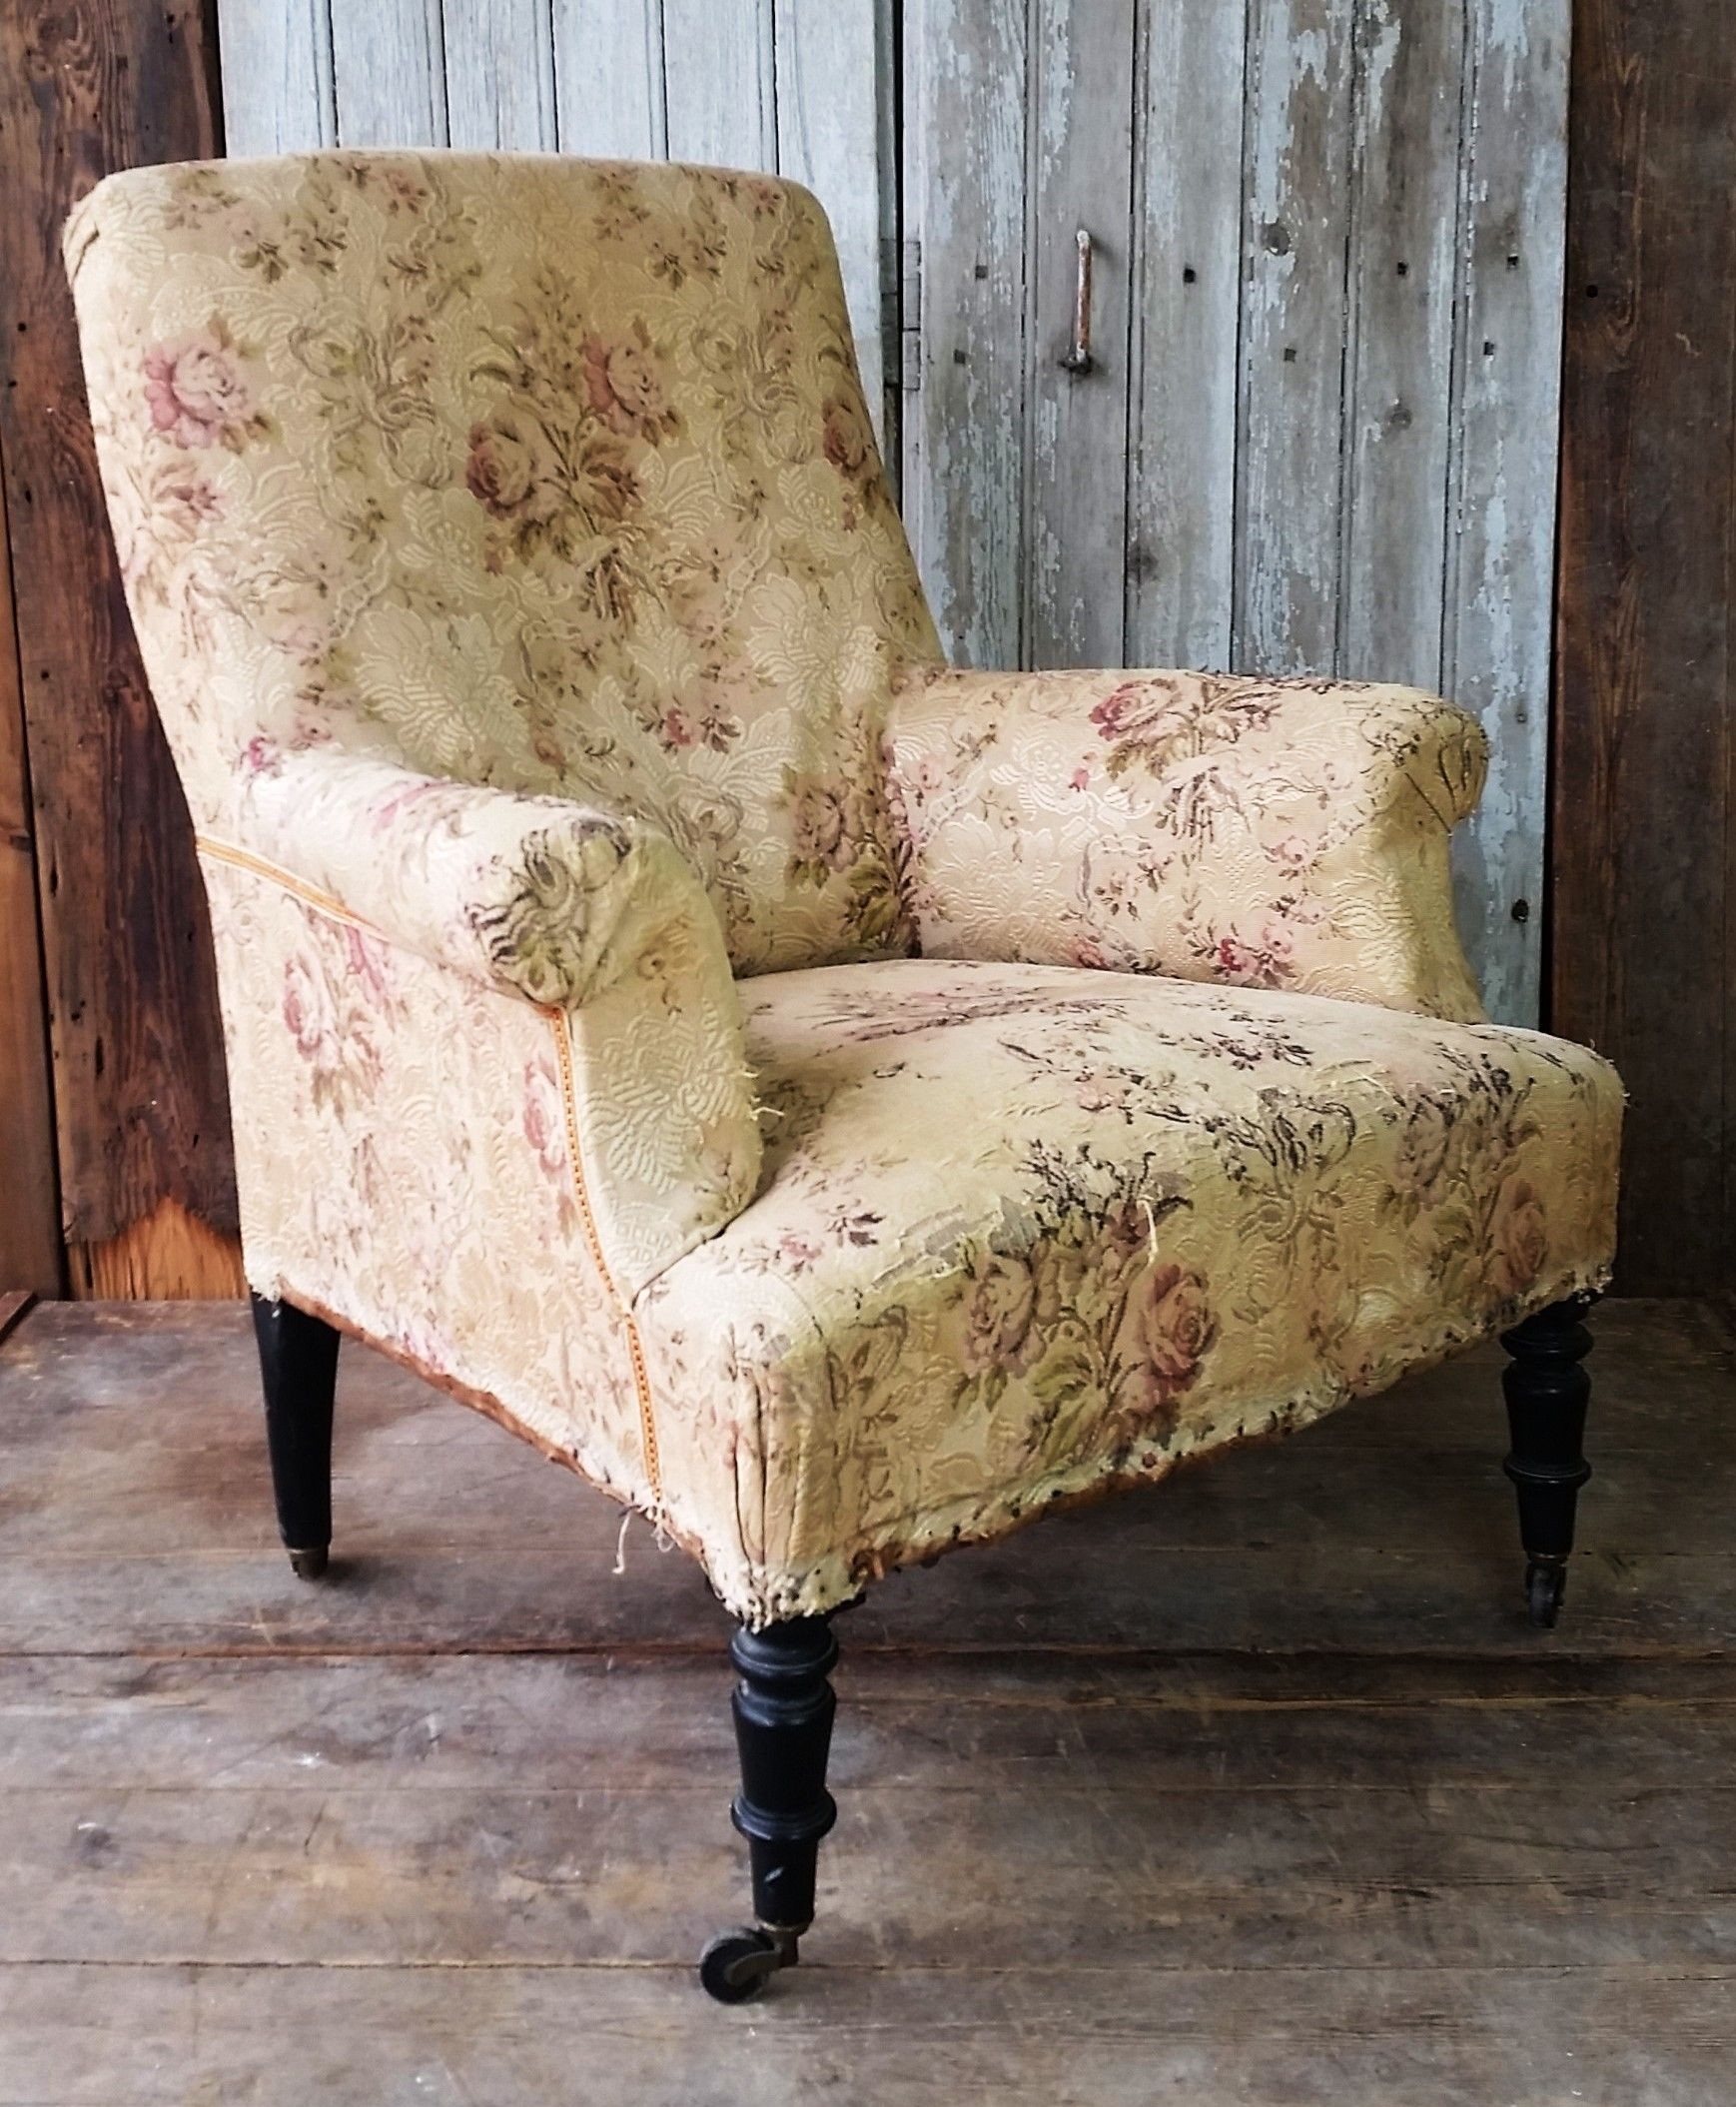 French antique chair with worn original upholstery.